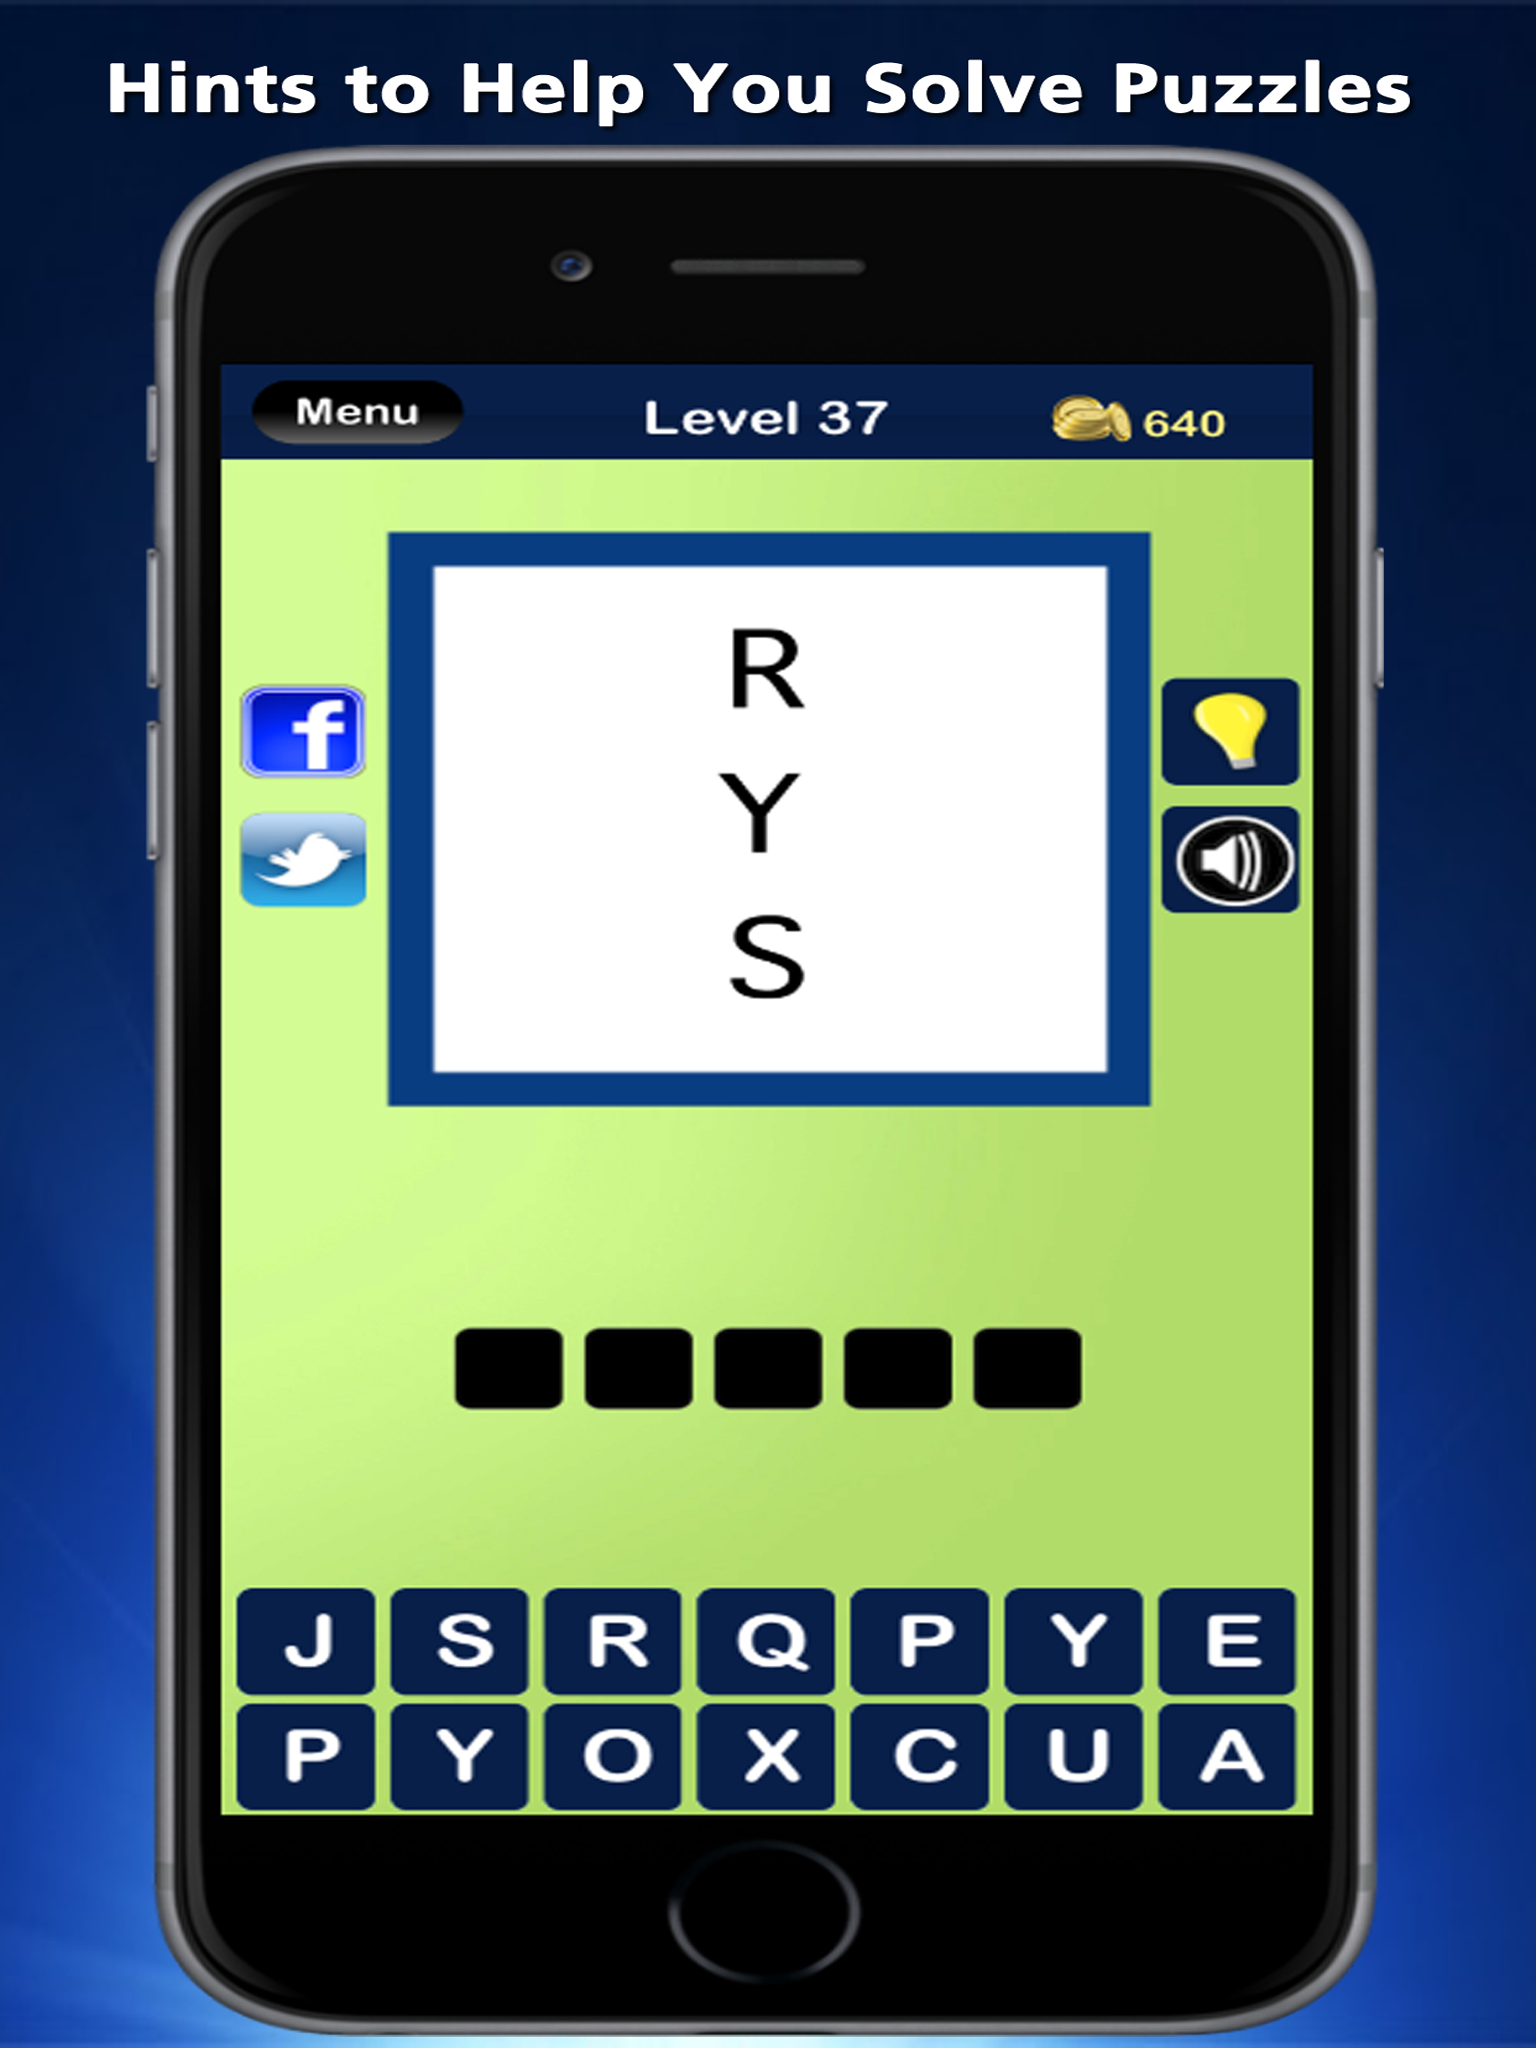 Evil Rebus Cryptic Word Puzzles, Riddles, Catchphrases and Brainteasers Quiz